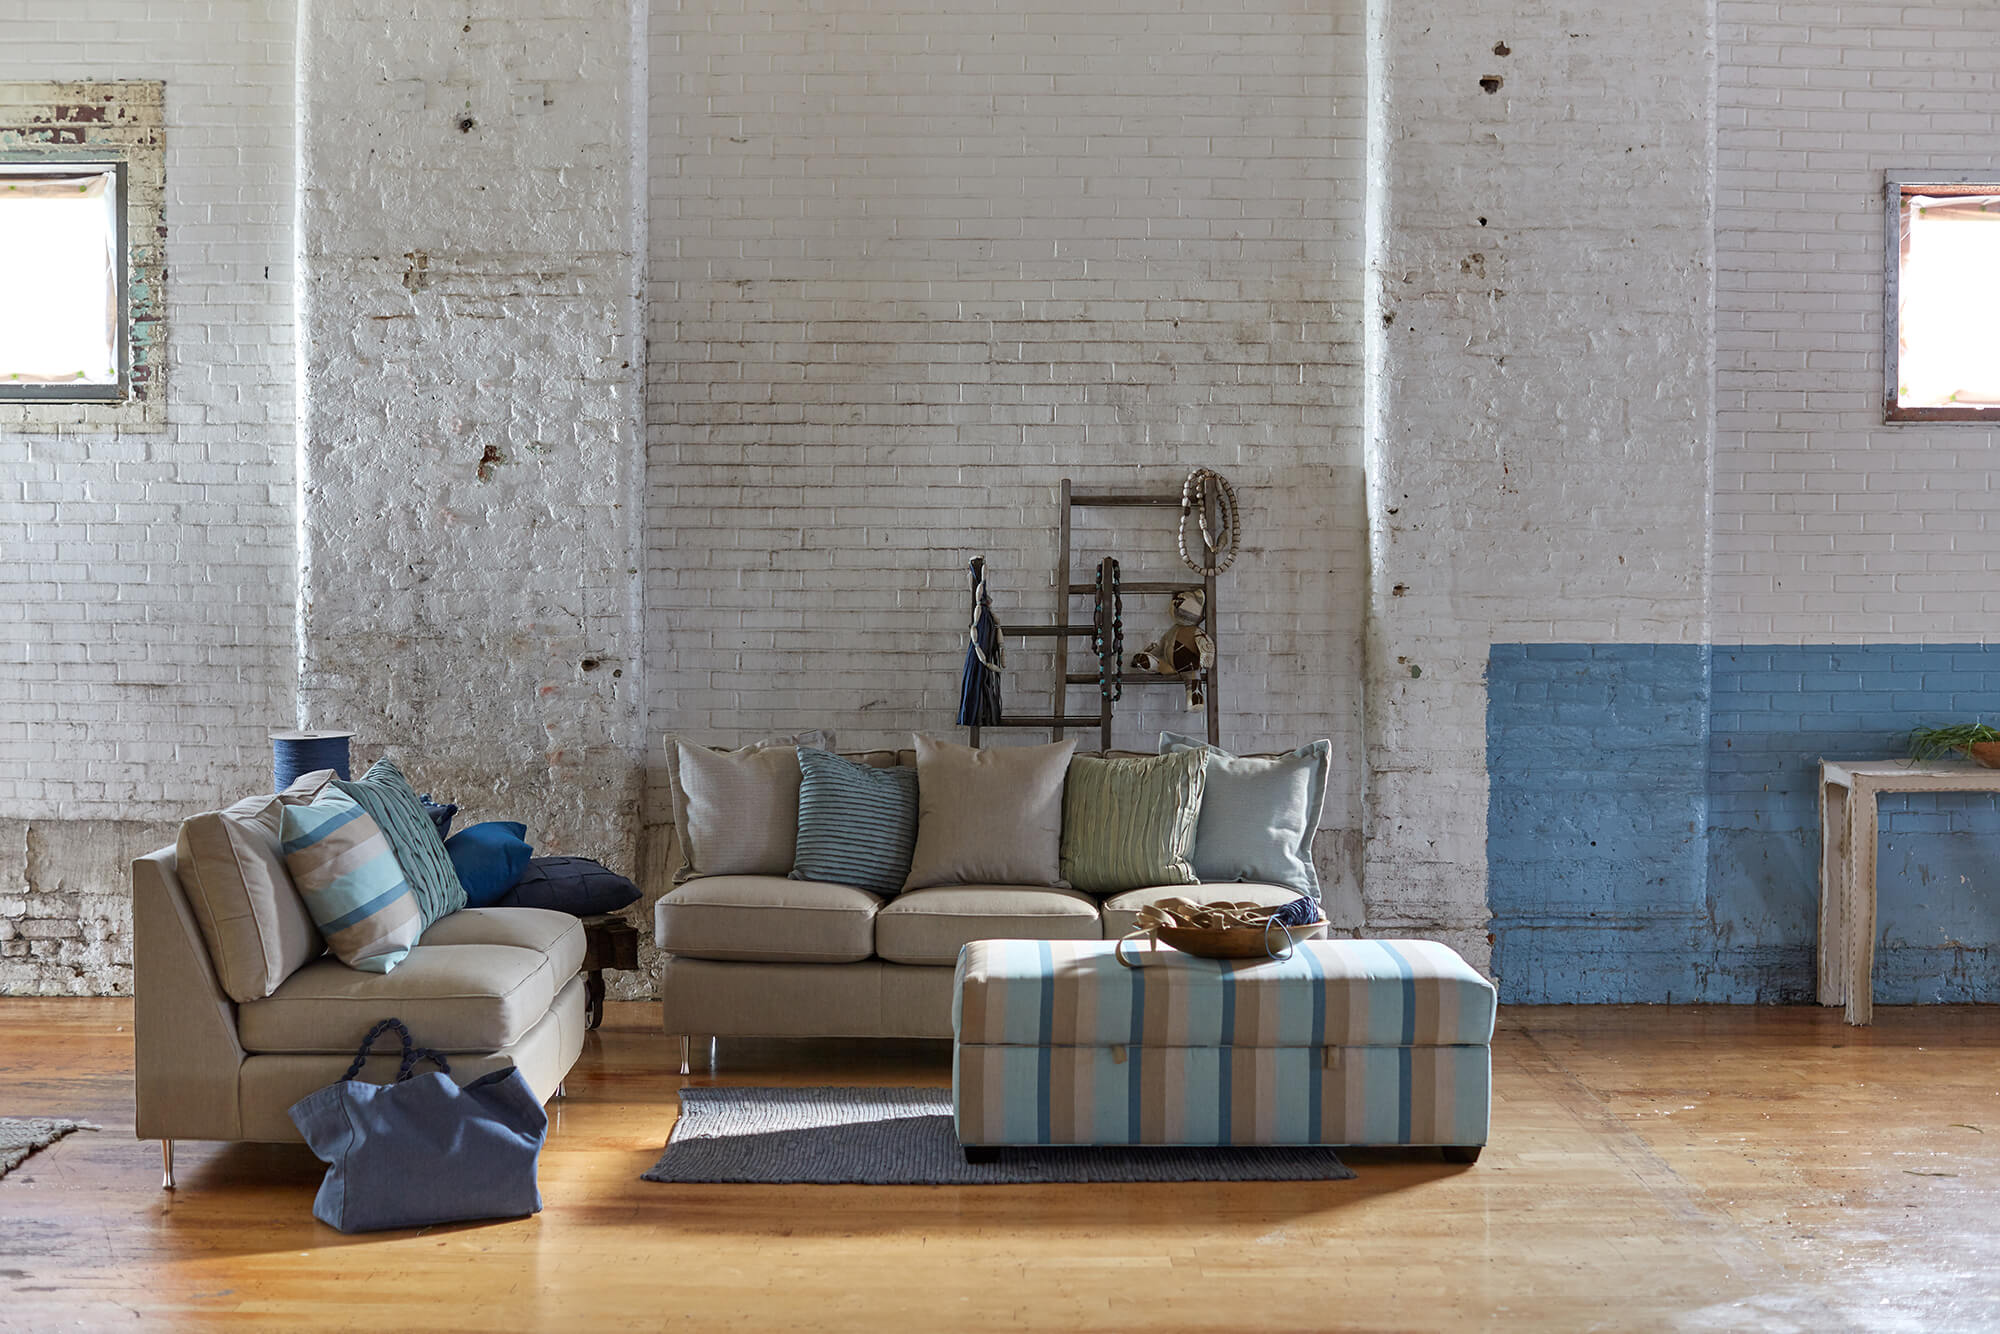 Neutral Sofas Are Complemented With A Large Upholstered Ottoman Blue Striped Sunbrella Fabric